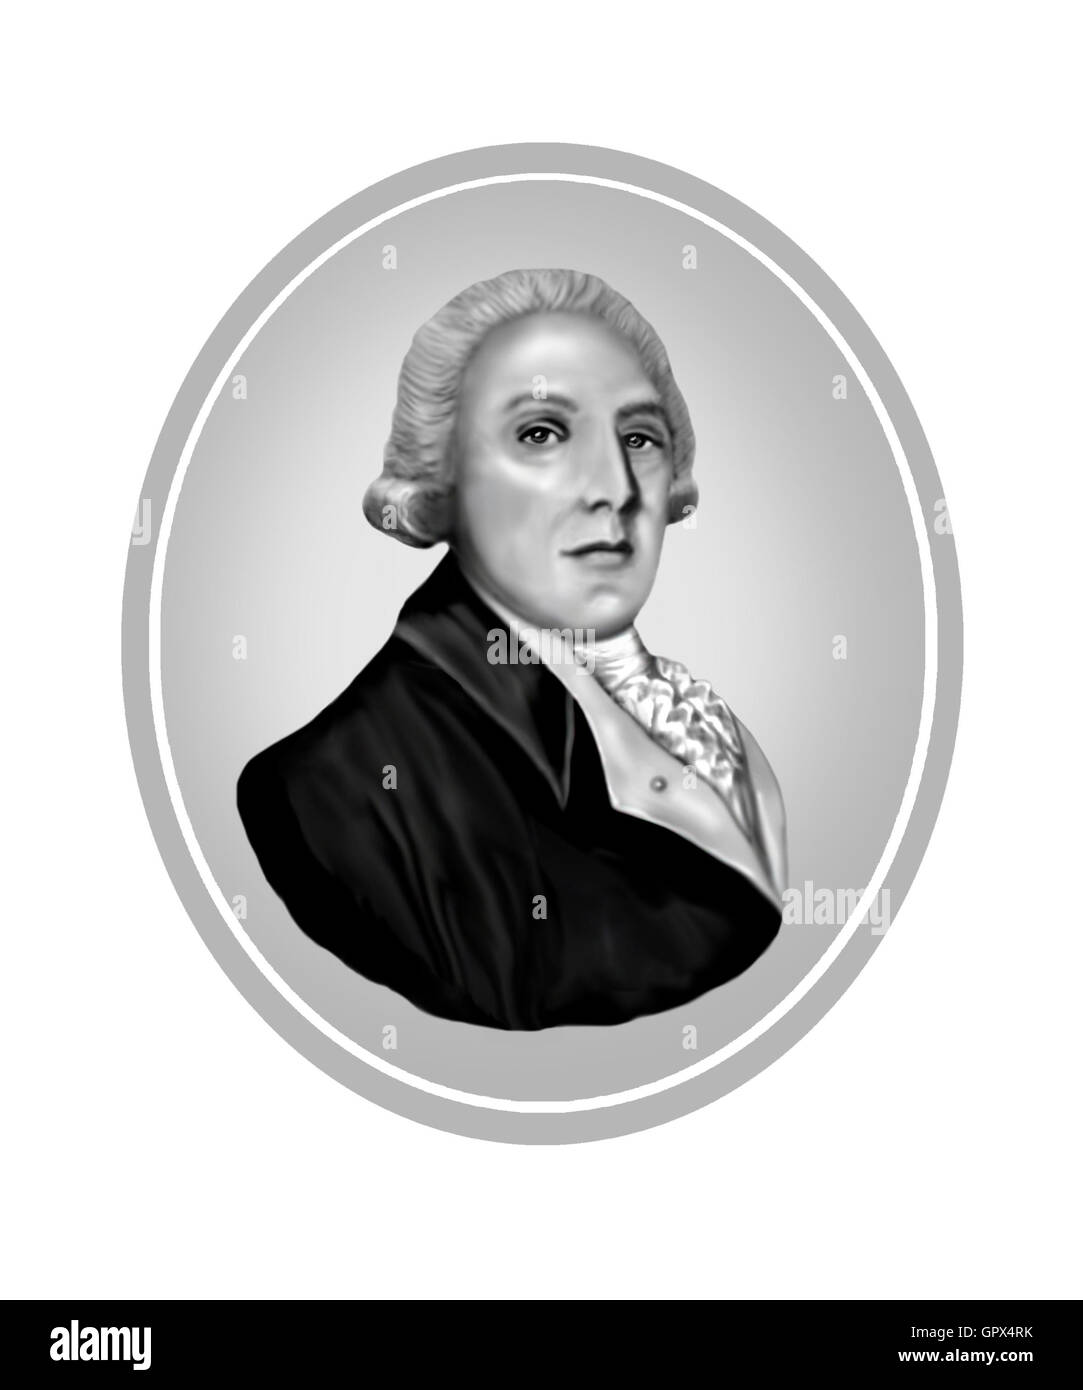 George Bass, 1771-1803, Naval Surgeon, Explorer - Stock Image